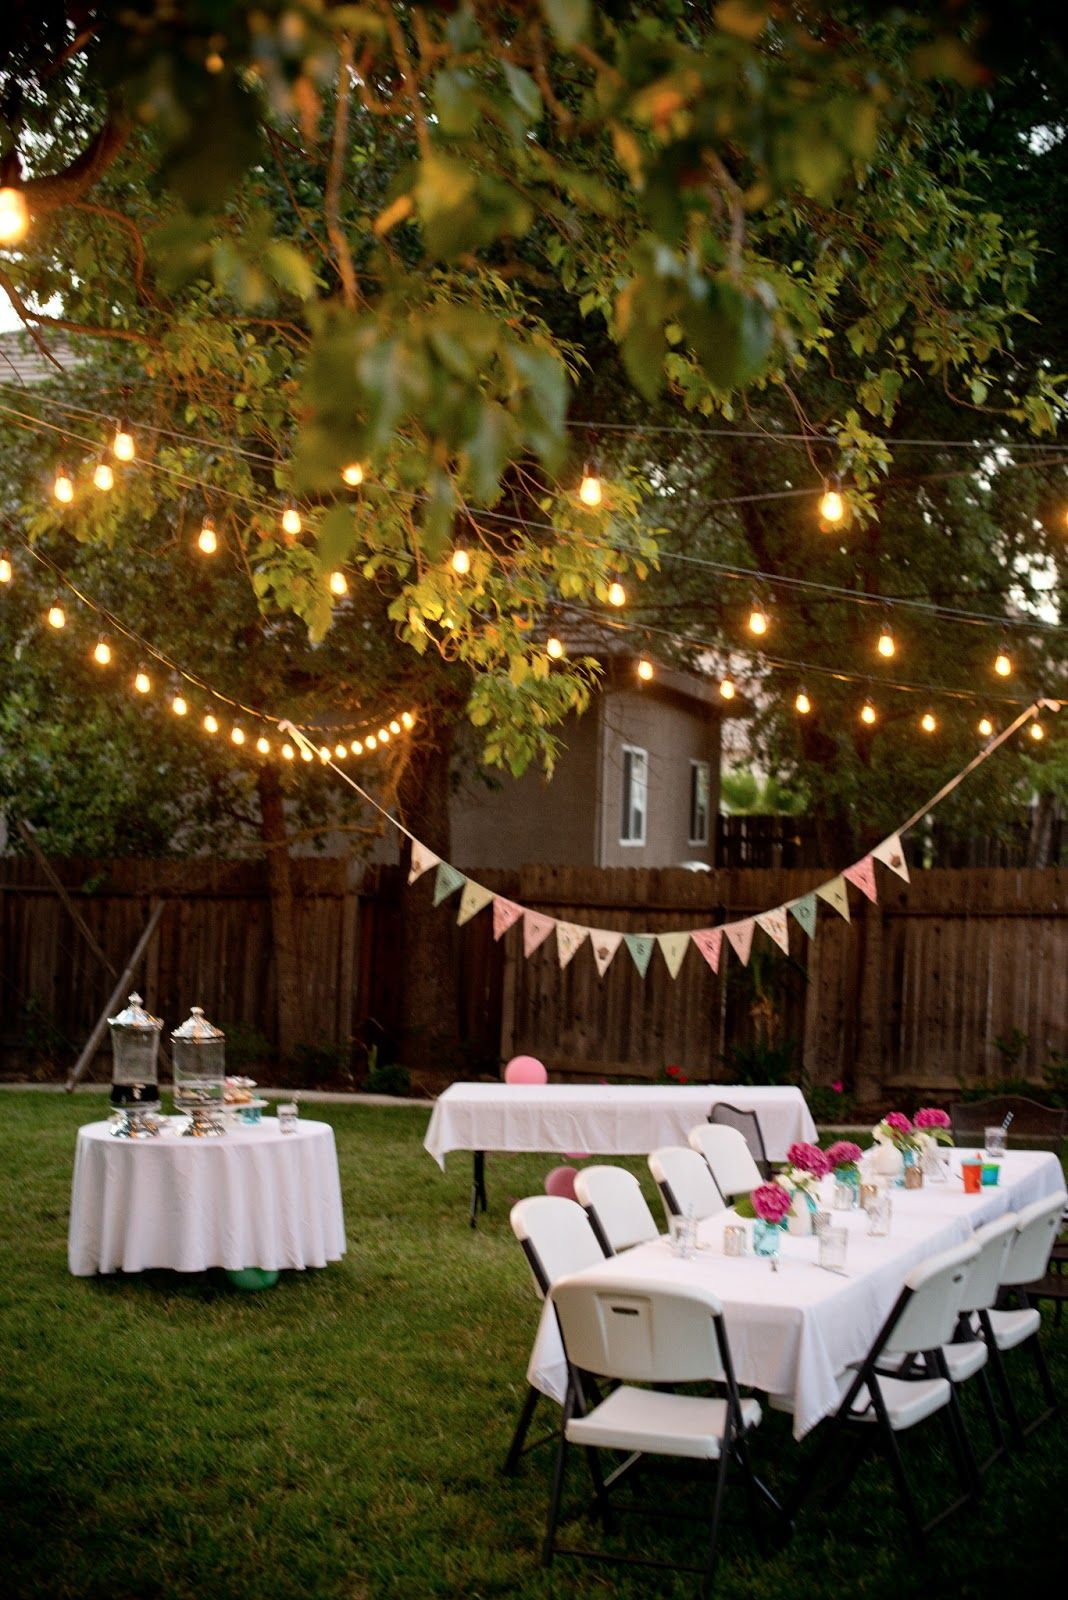 it looks so inviting backyard party google search º